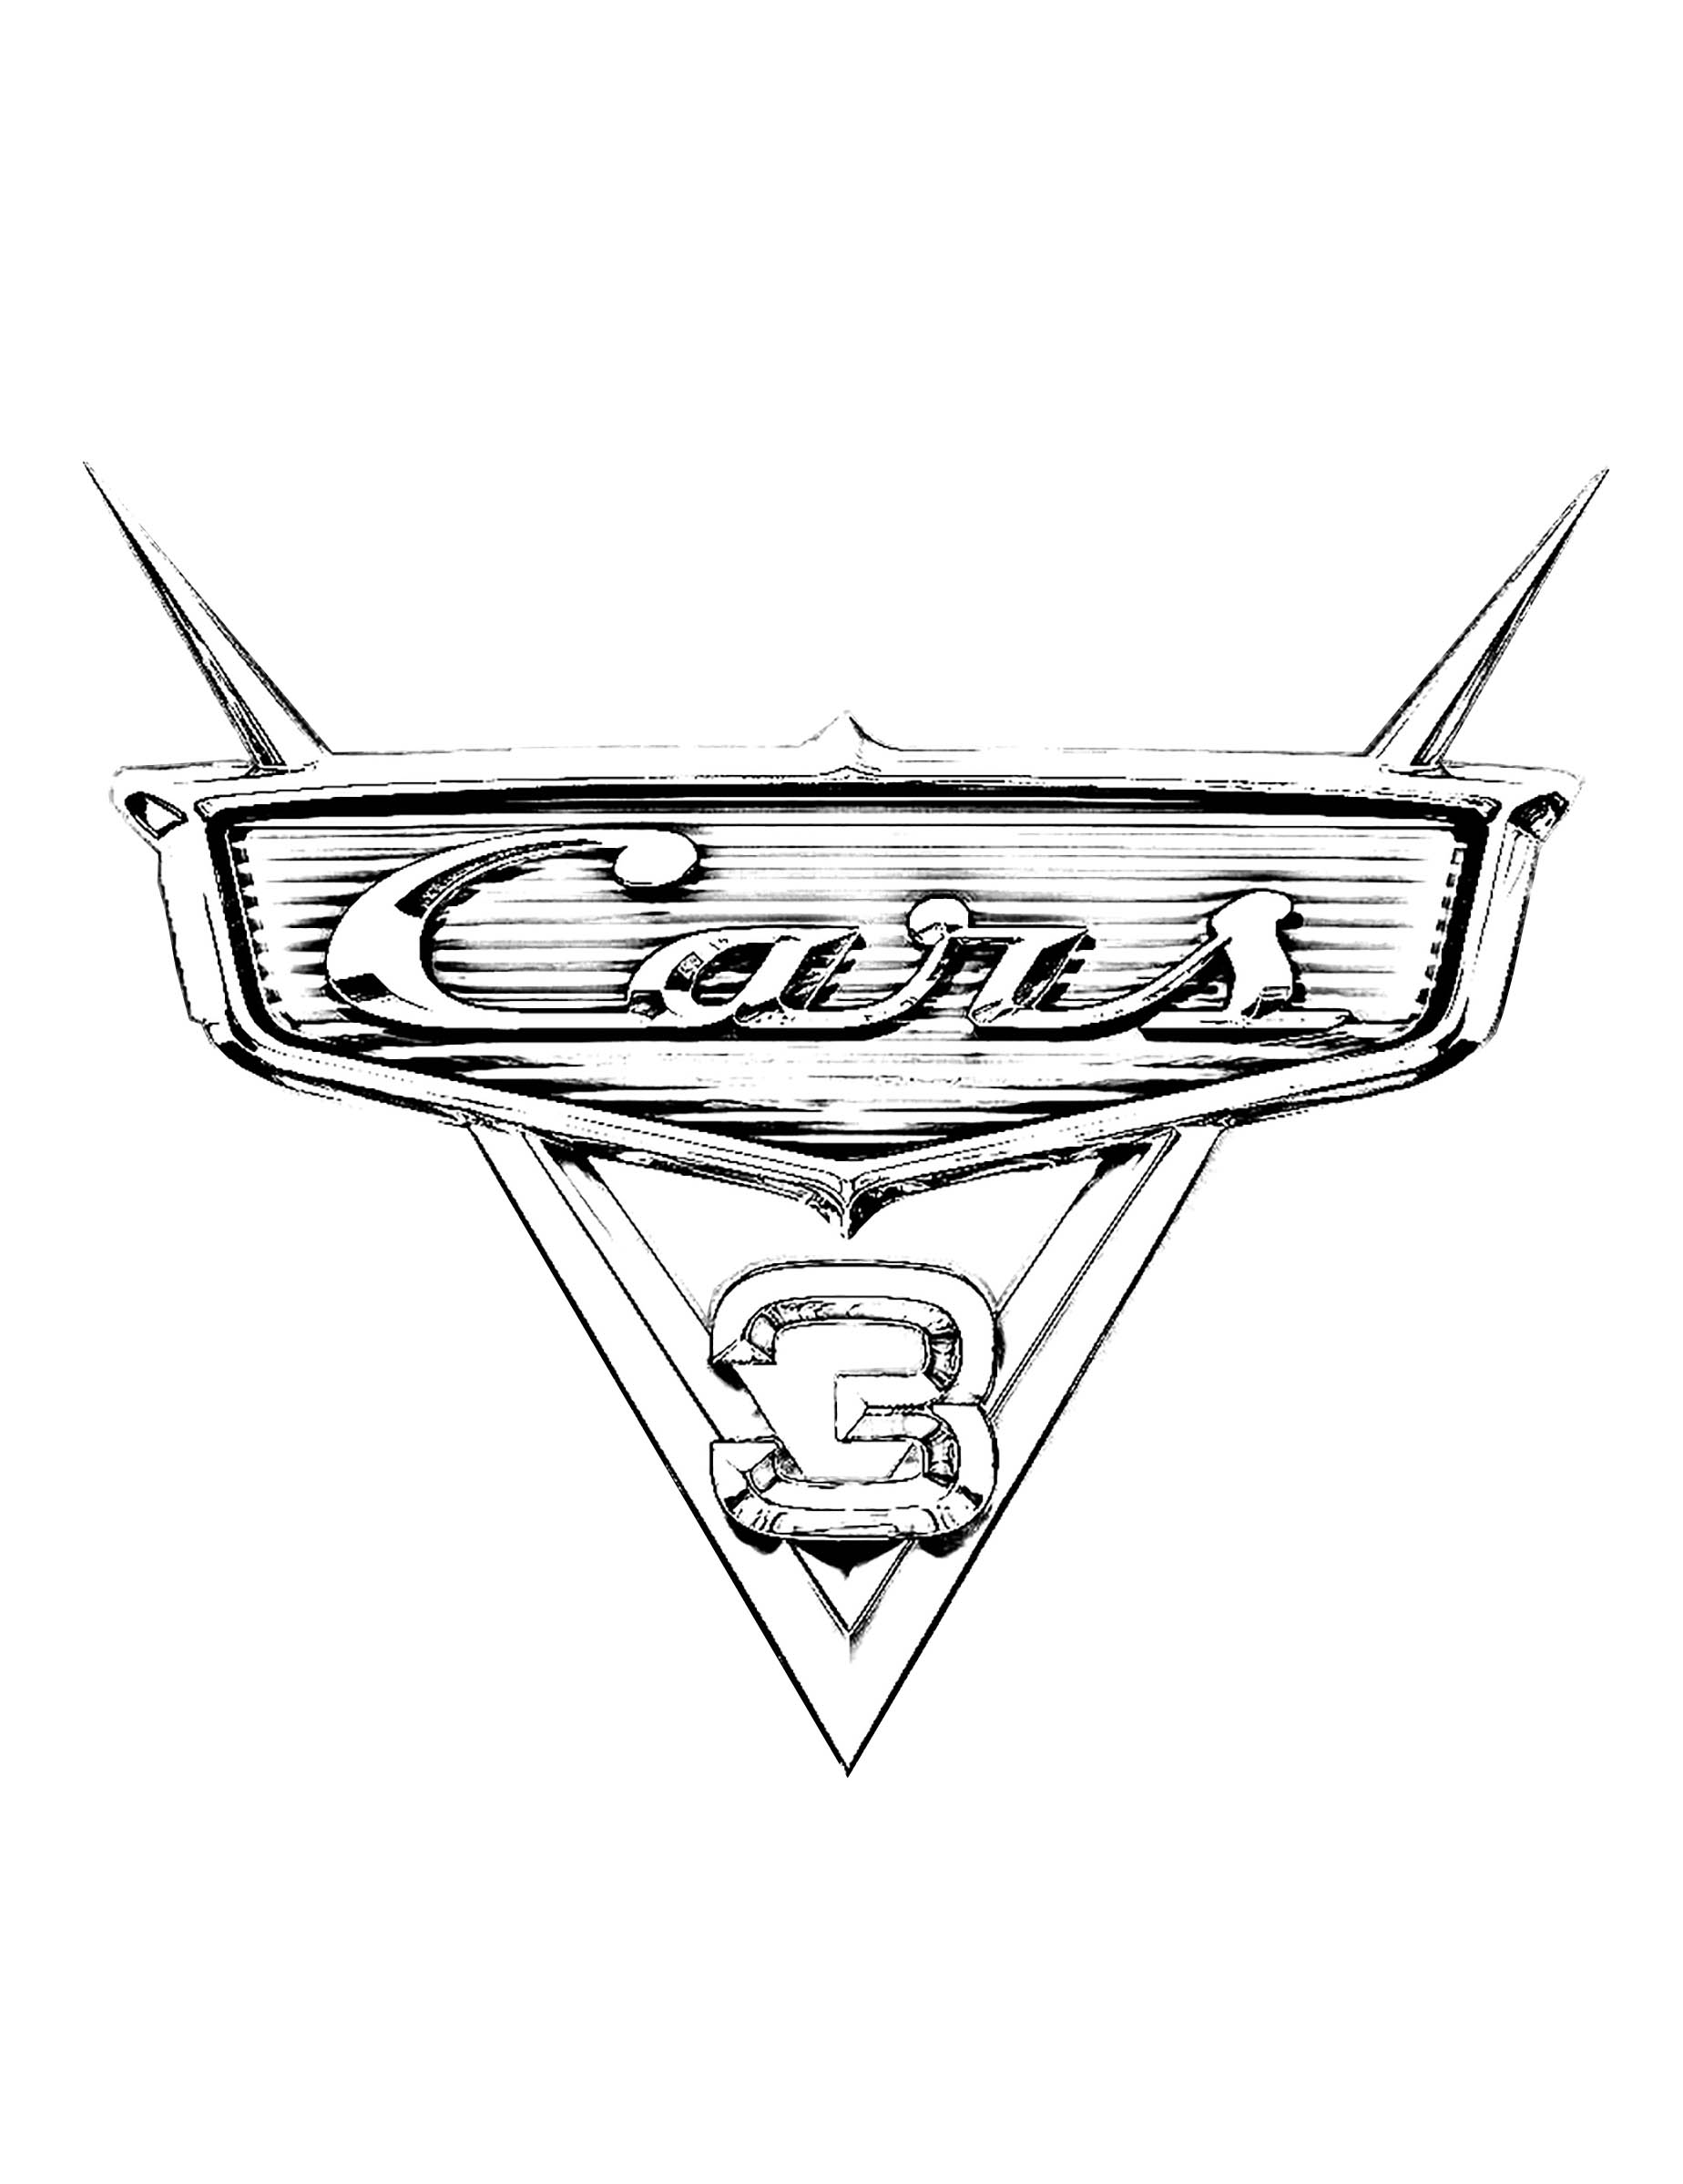 Unique dessin a imprimer cars 3 - Coloriage cars image ...